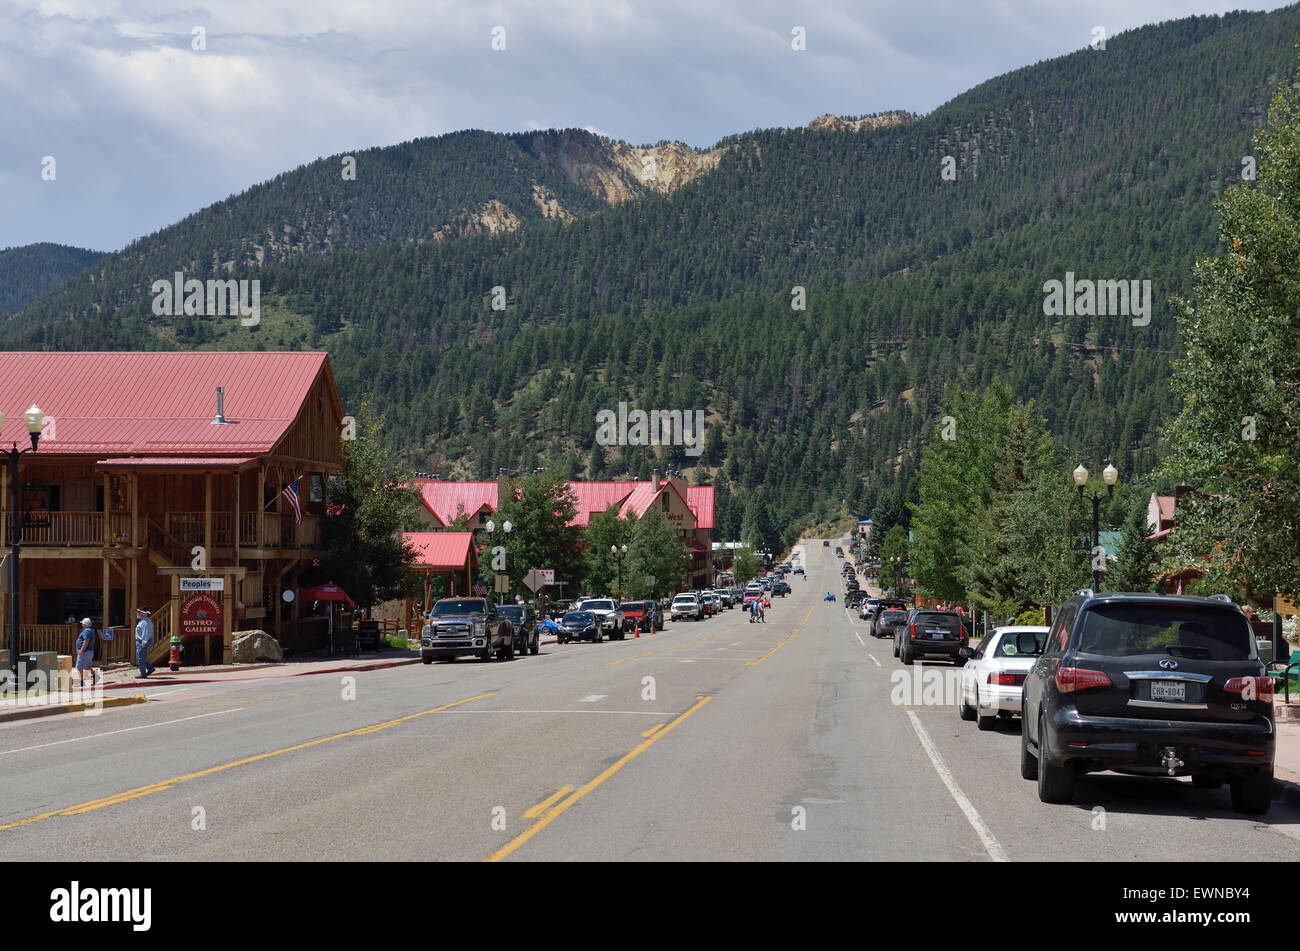 New mexico taos county carson - Main Street Red River Ski Resort In Summer Taos County New Mexico Usa Stock Image